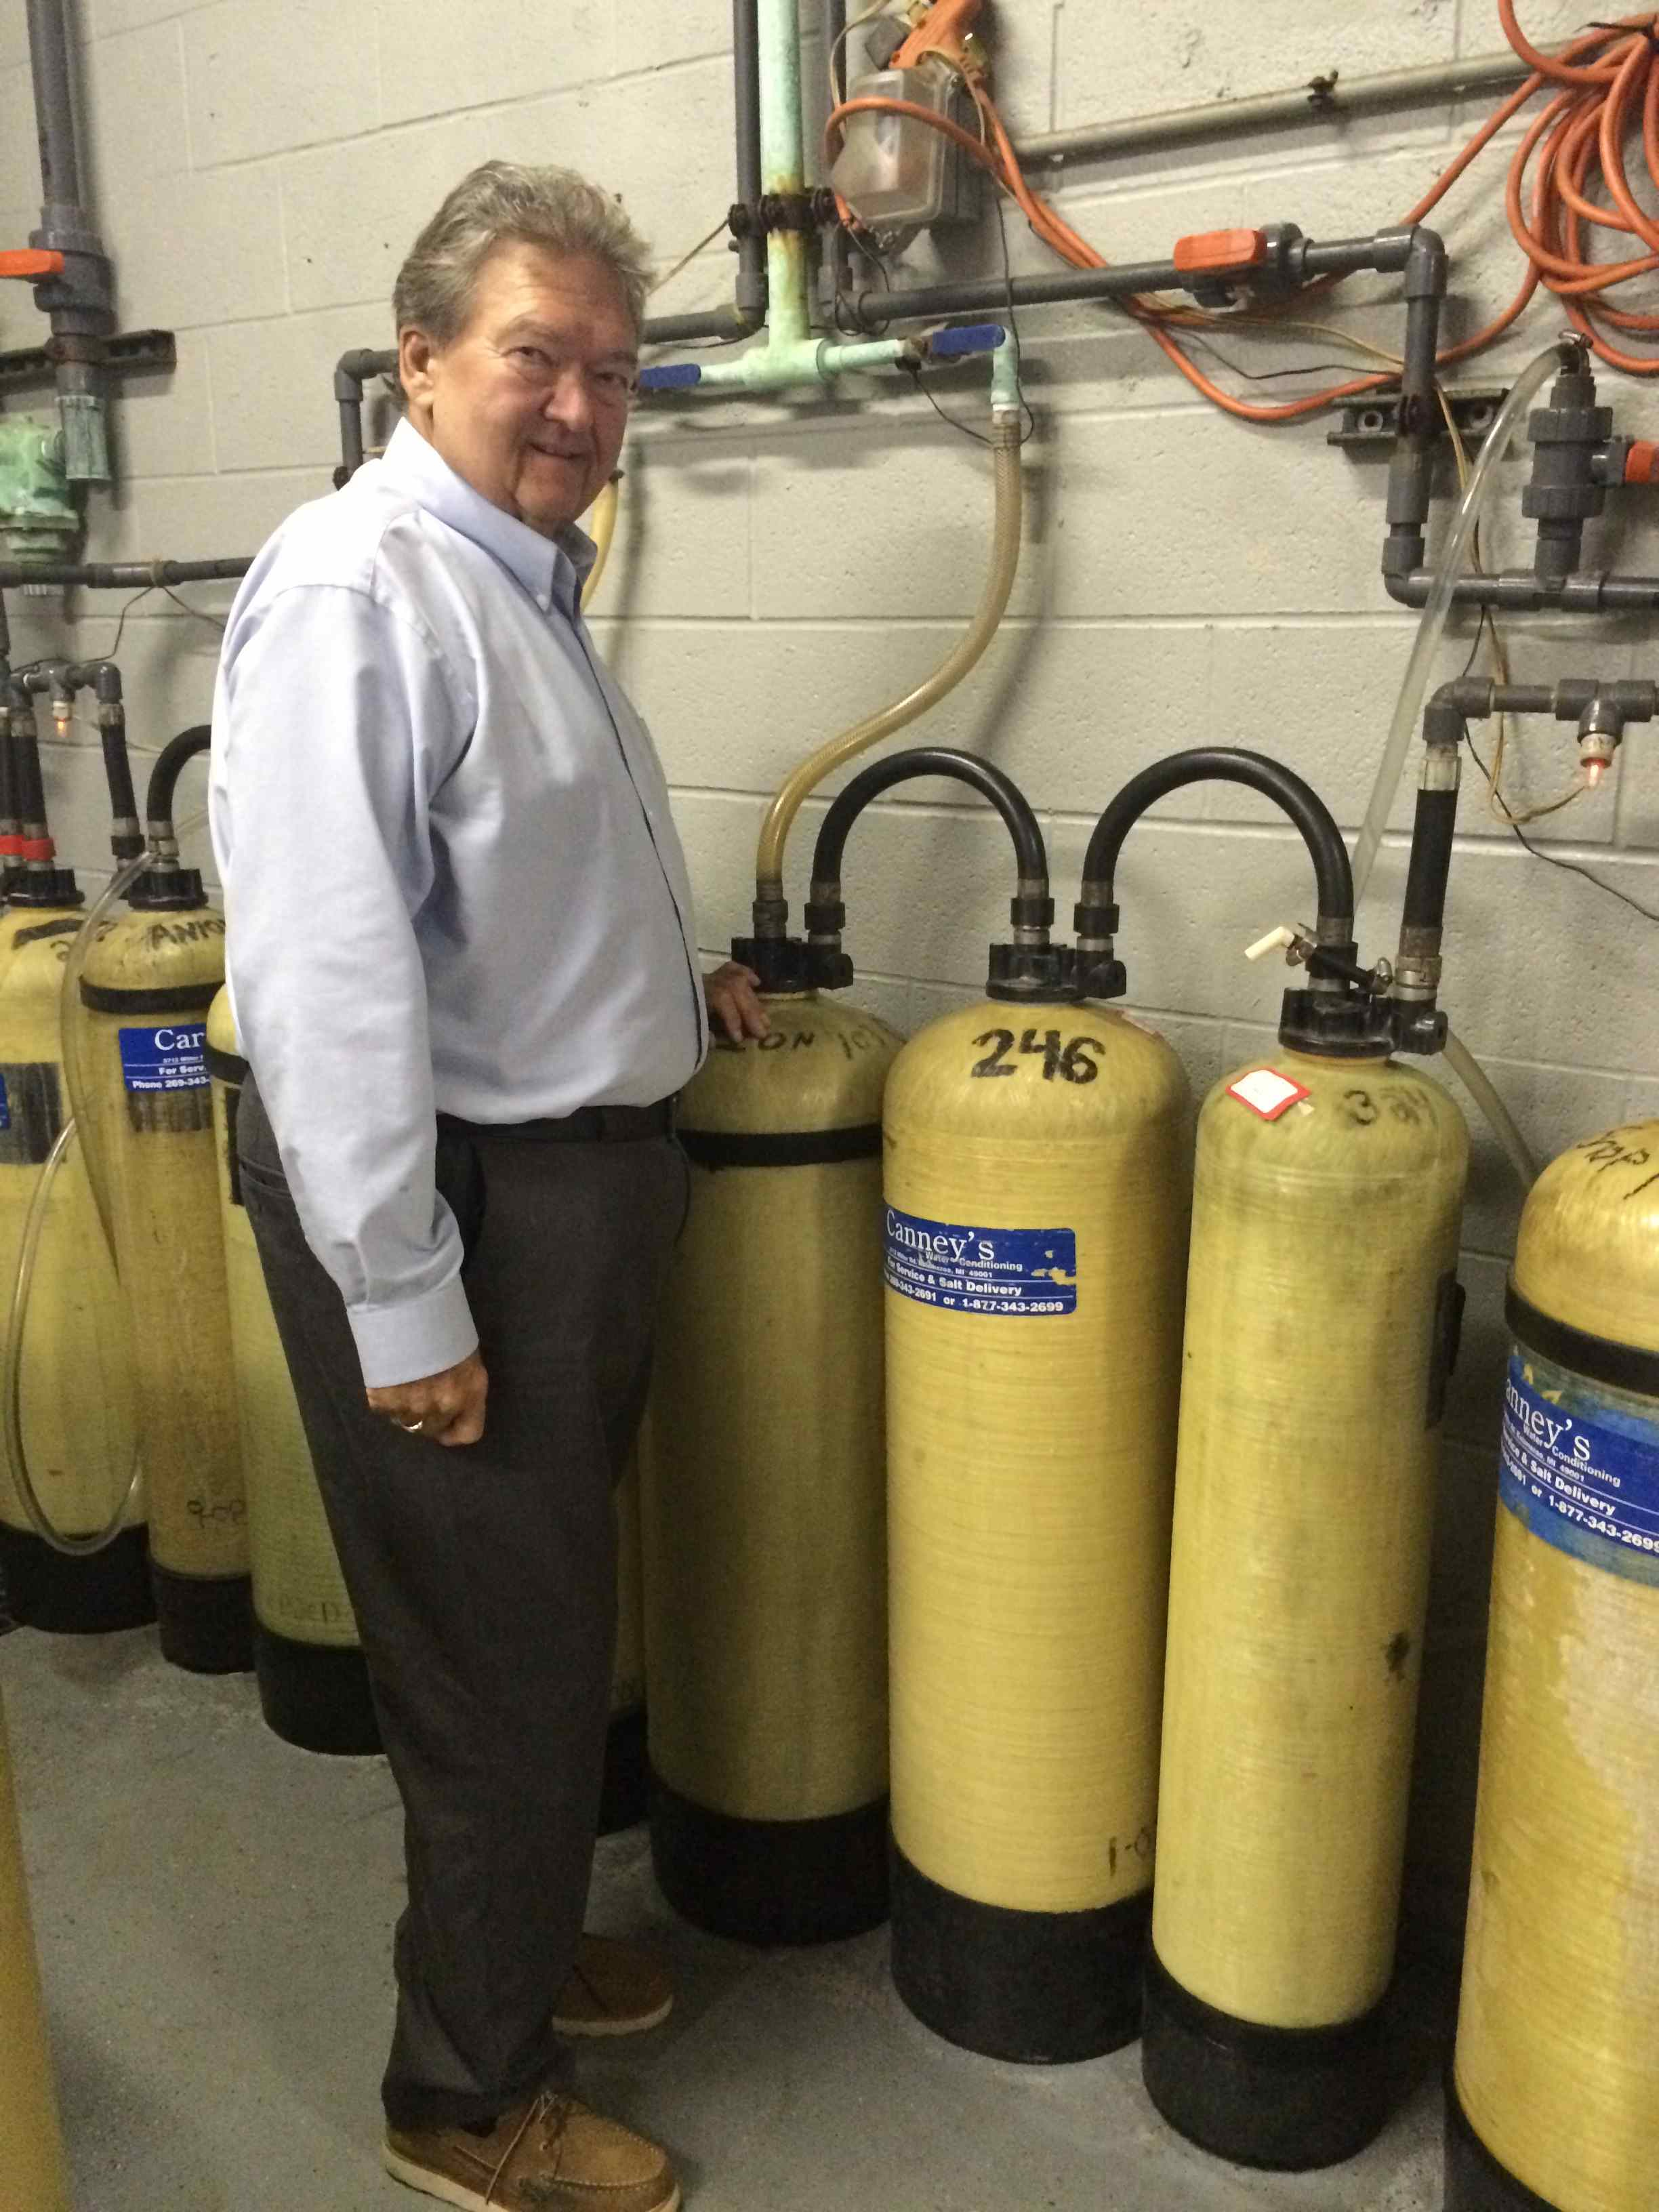 Brian Canney with the Portable De-Ionization Tanks